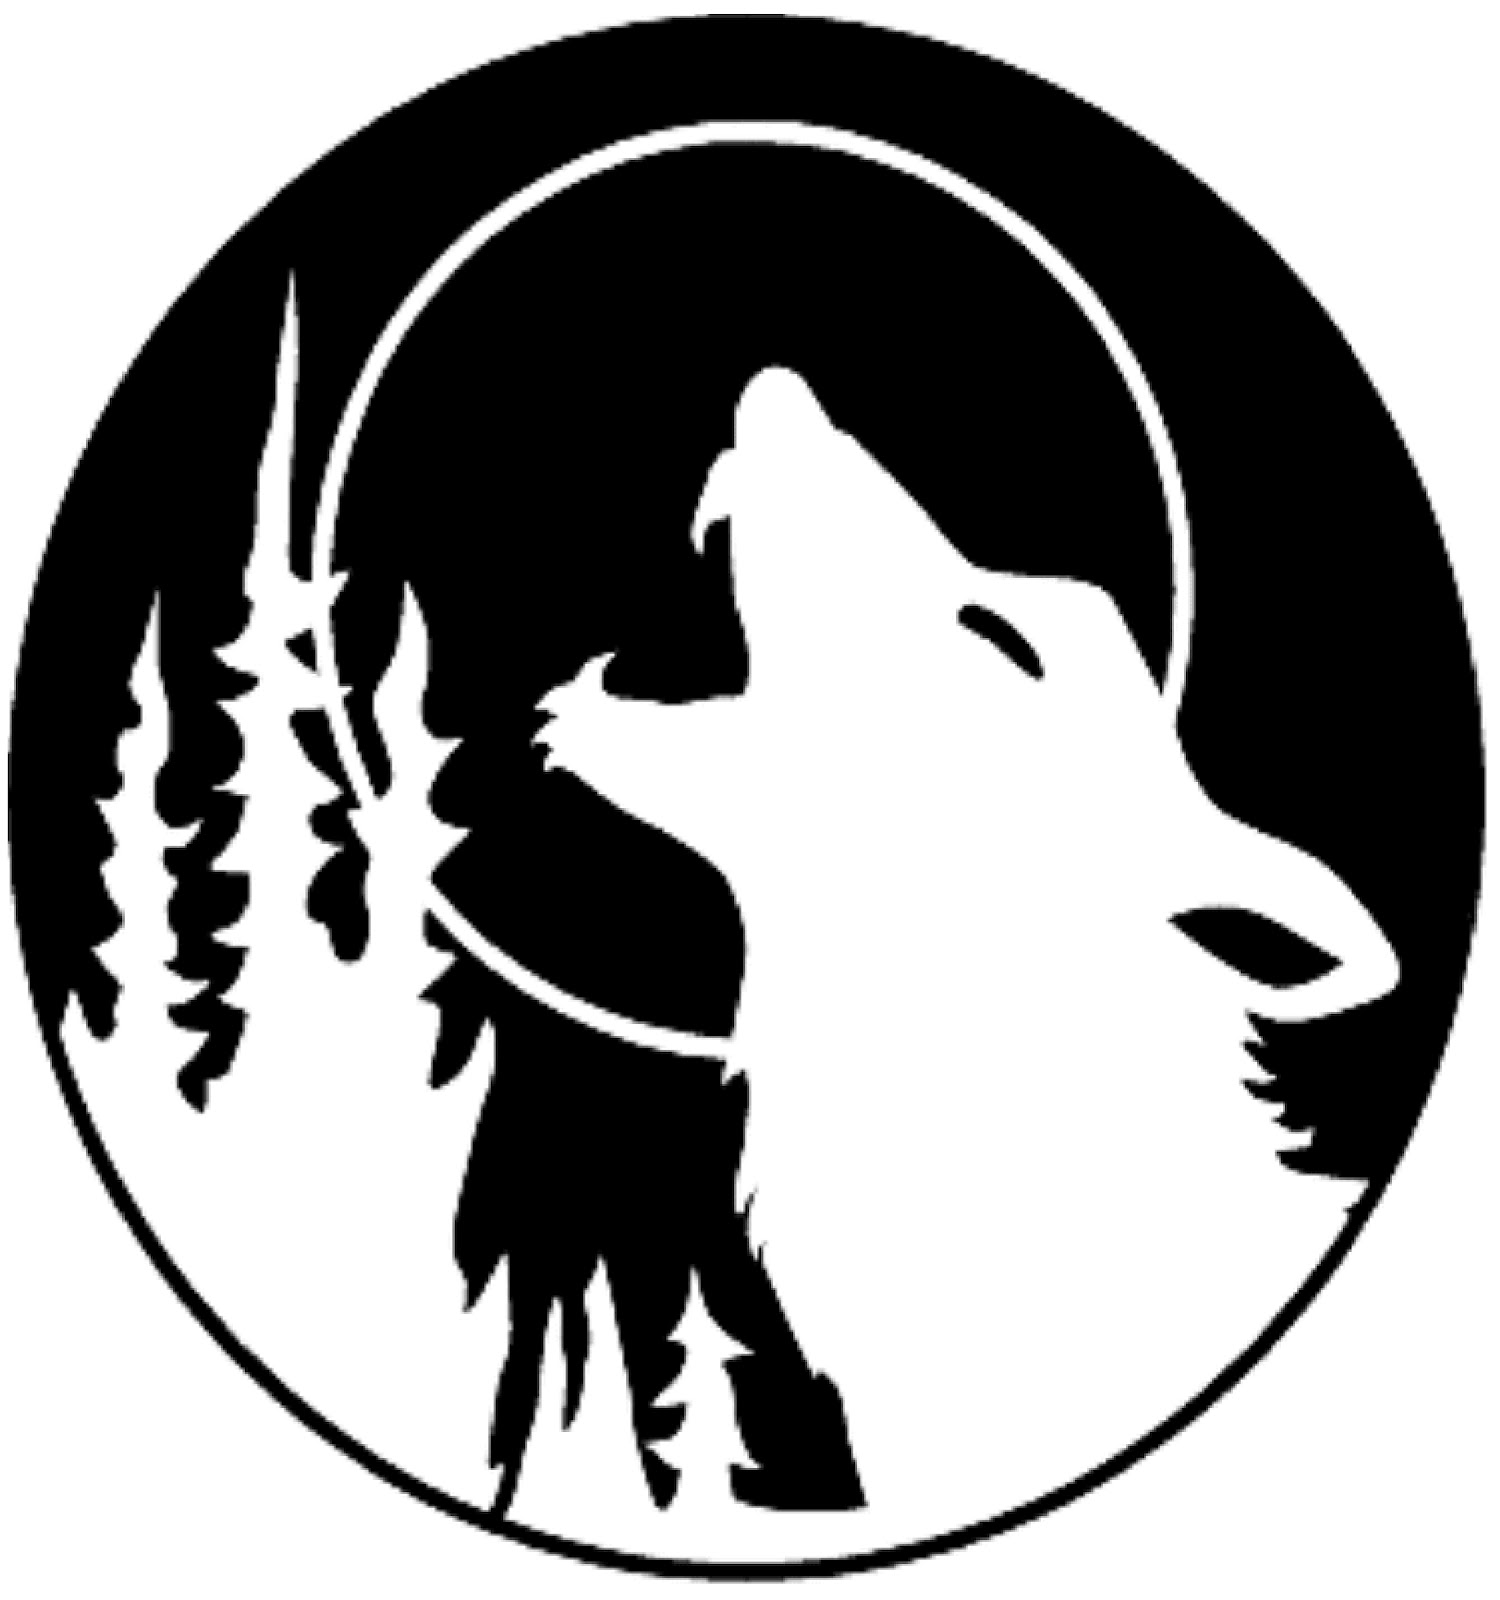 HOWLING WOLF PUMPKIN CARVING TEMPLATE